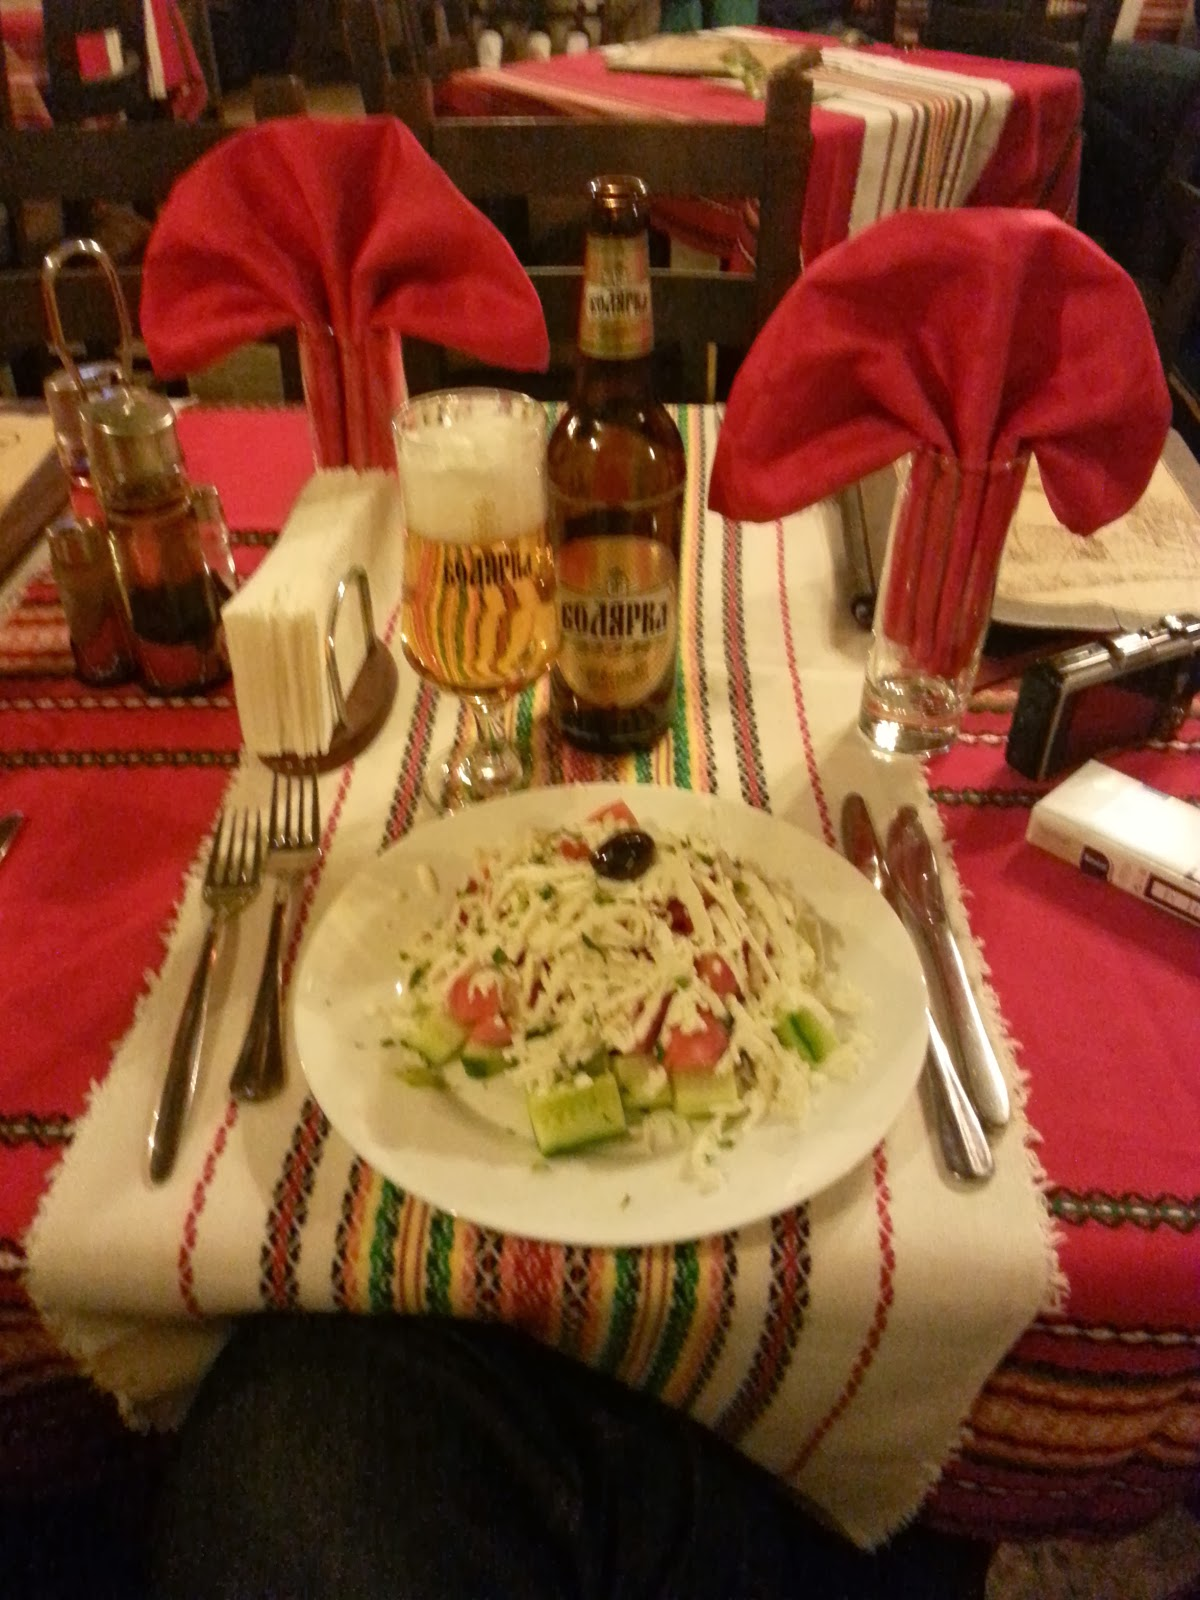 First Shopska salad and a beer